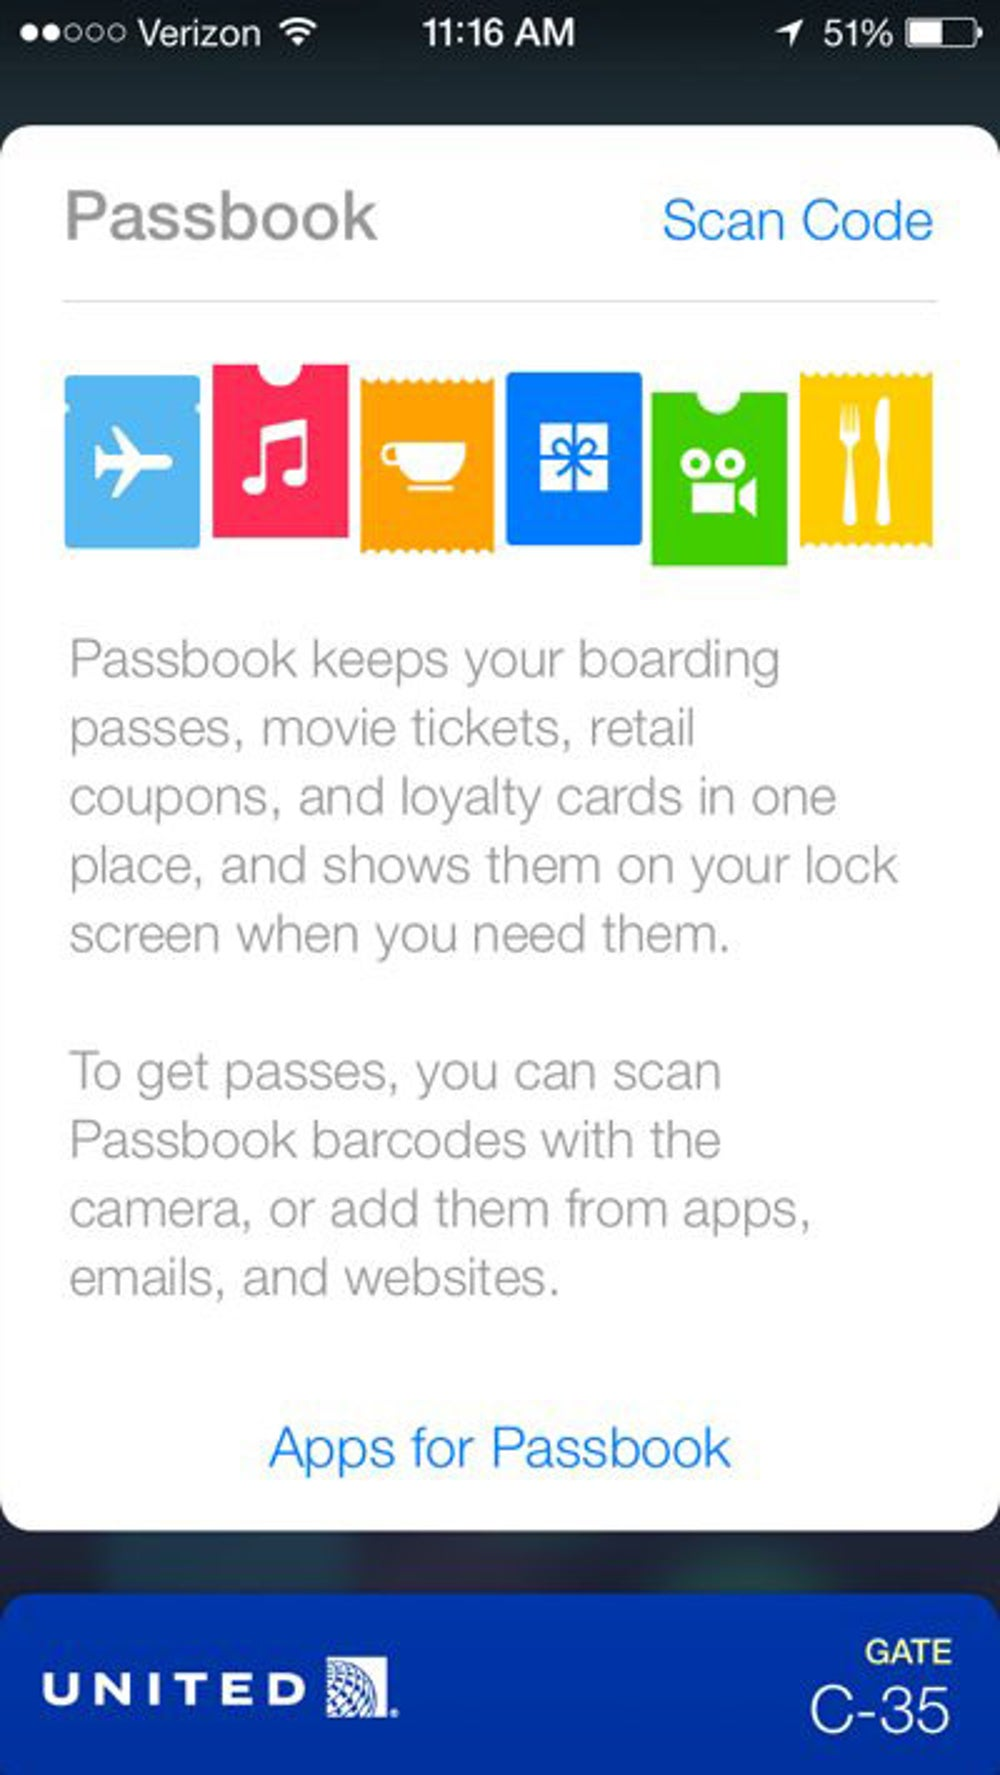 The new Passbook app, which stores coupons, concert tickets, boarding passes, etc.